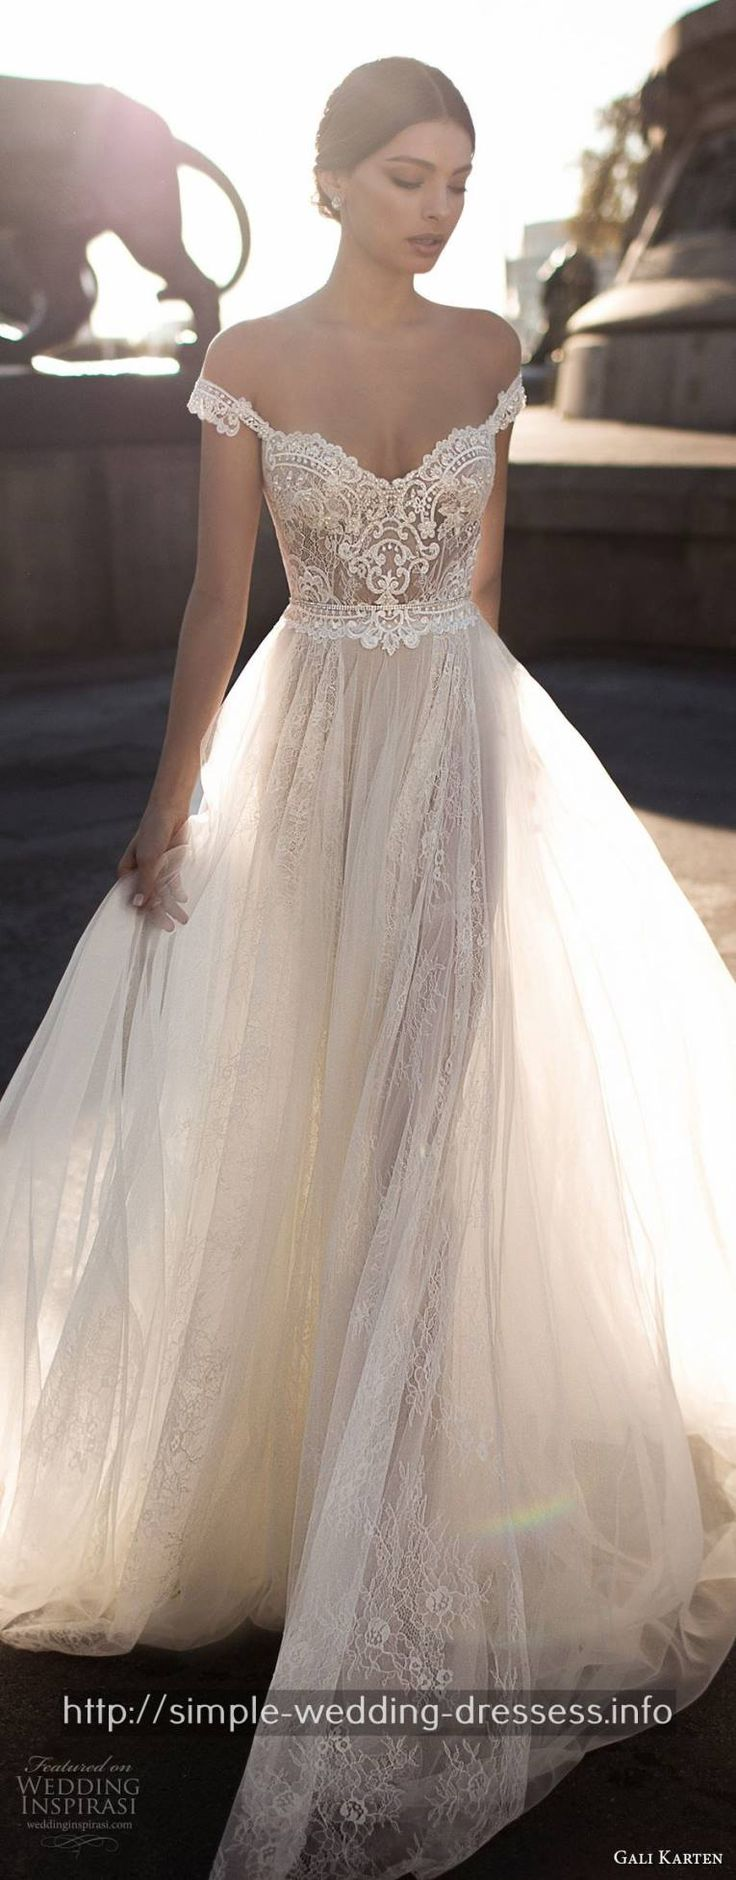 destination wedding dresses - Short wedding dresses for older women.art nouveau wedding dress 5277374669